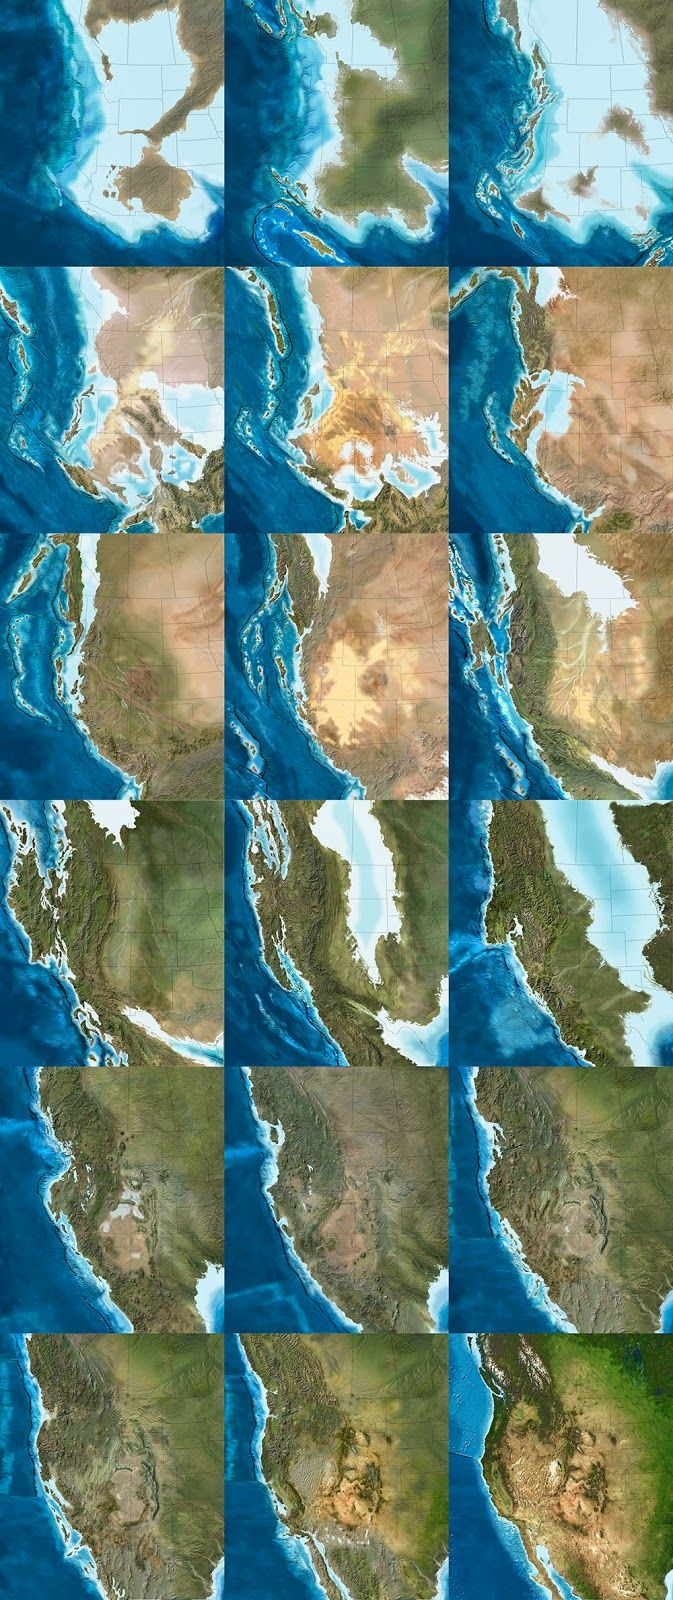 The paleo-tectonic maps of retired geologist Ronald Blakey are mesmerizing and impossible to forget once you've seen them.